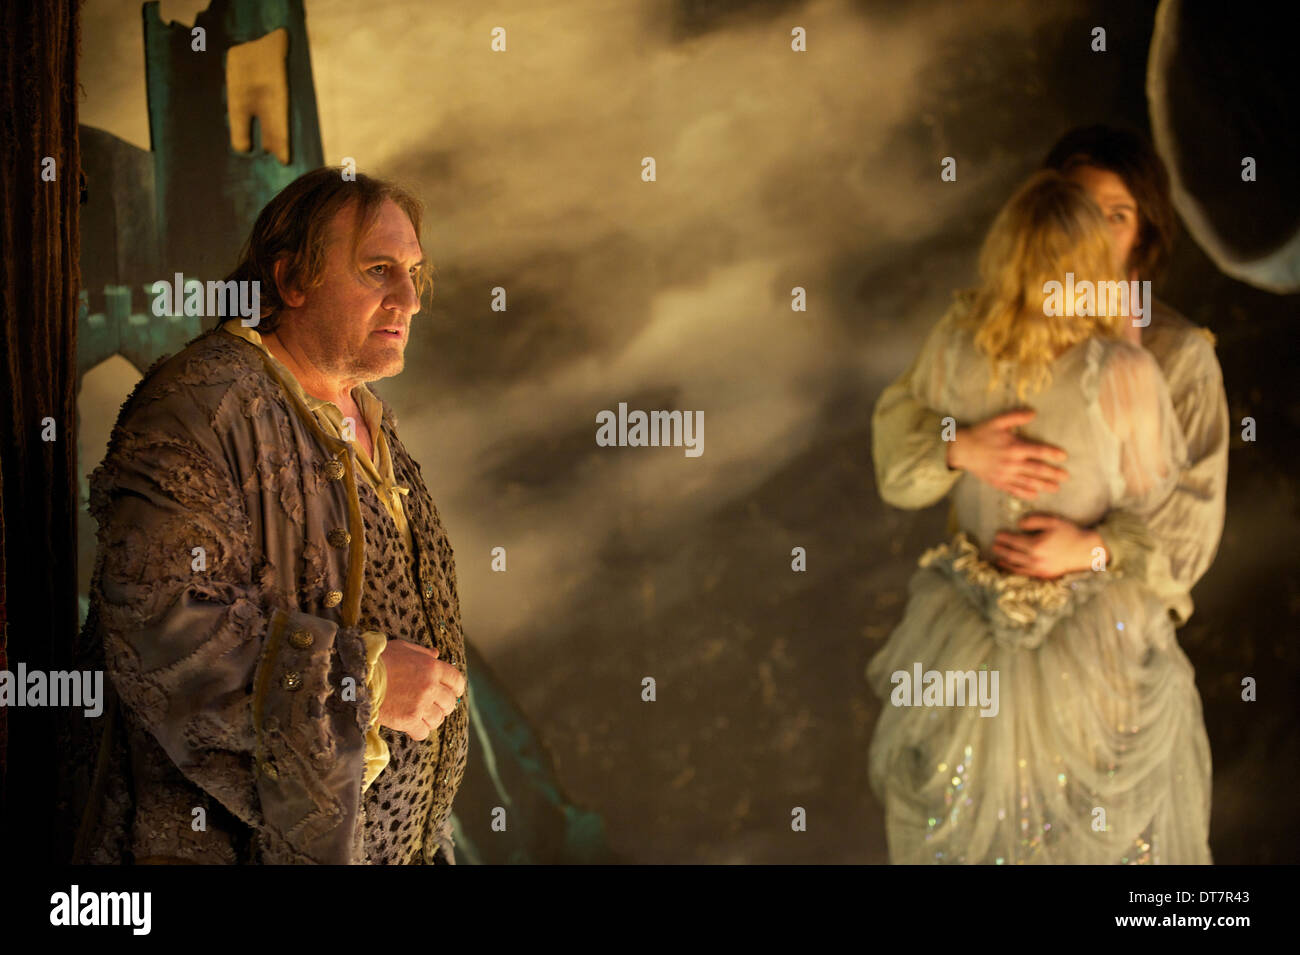 GERARD DEPARDIEU THE MAN WHO LAUGHS; L'HOMME QUI RIT (2012) - Stock Image